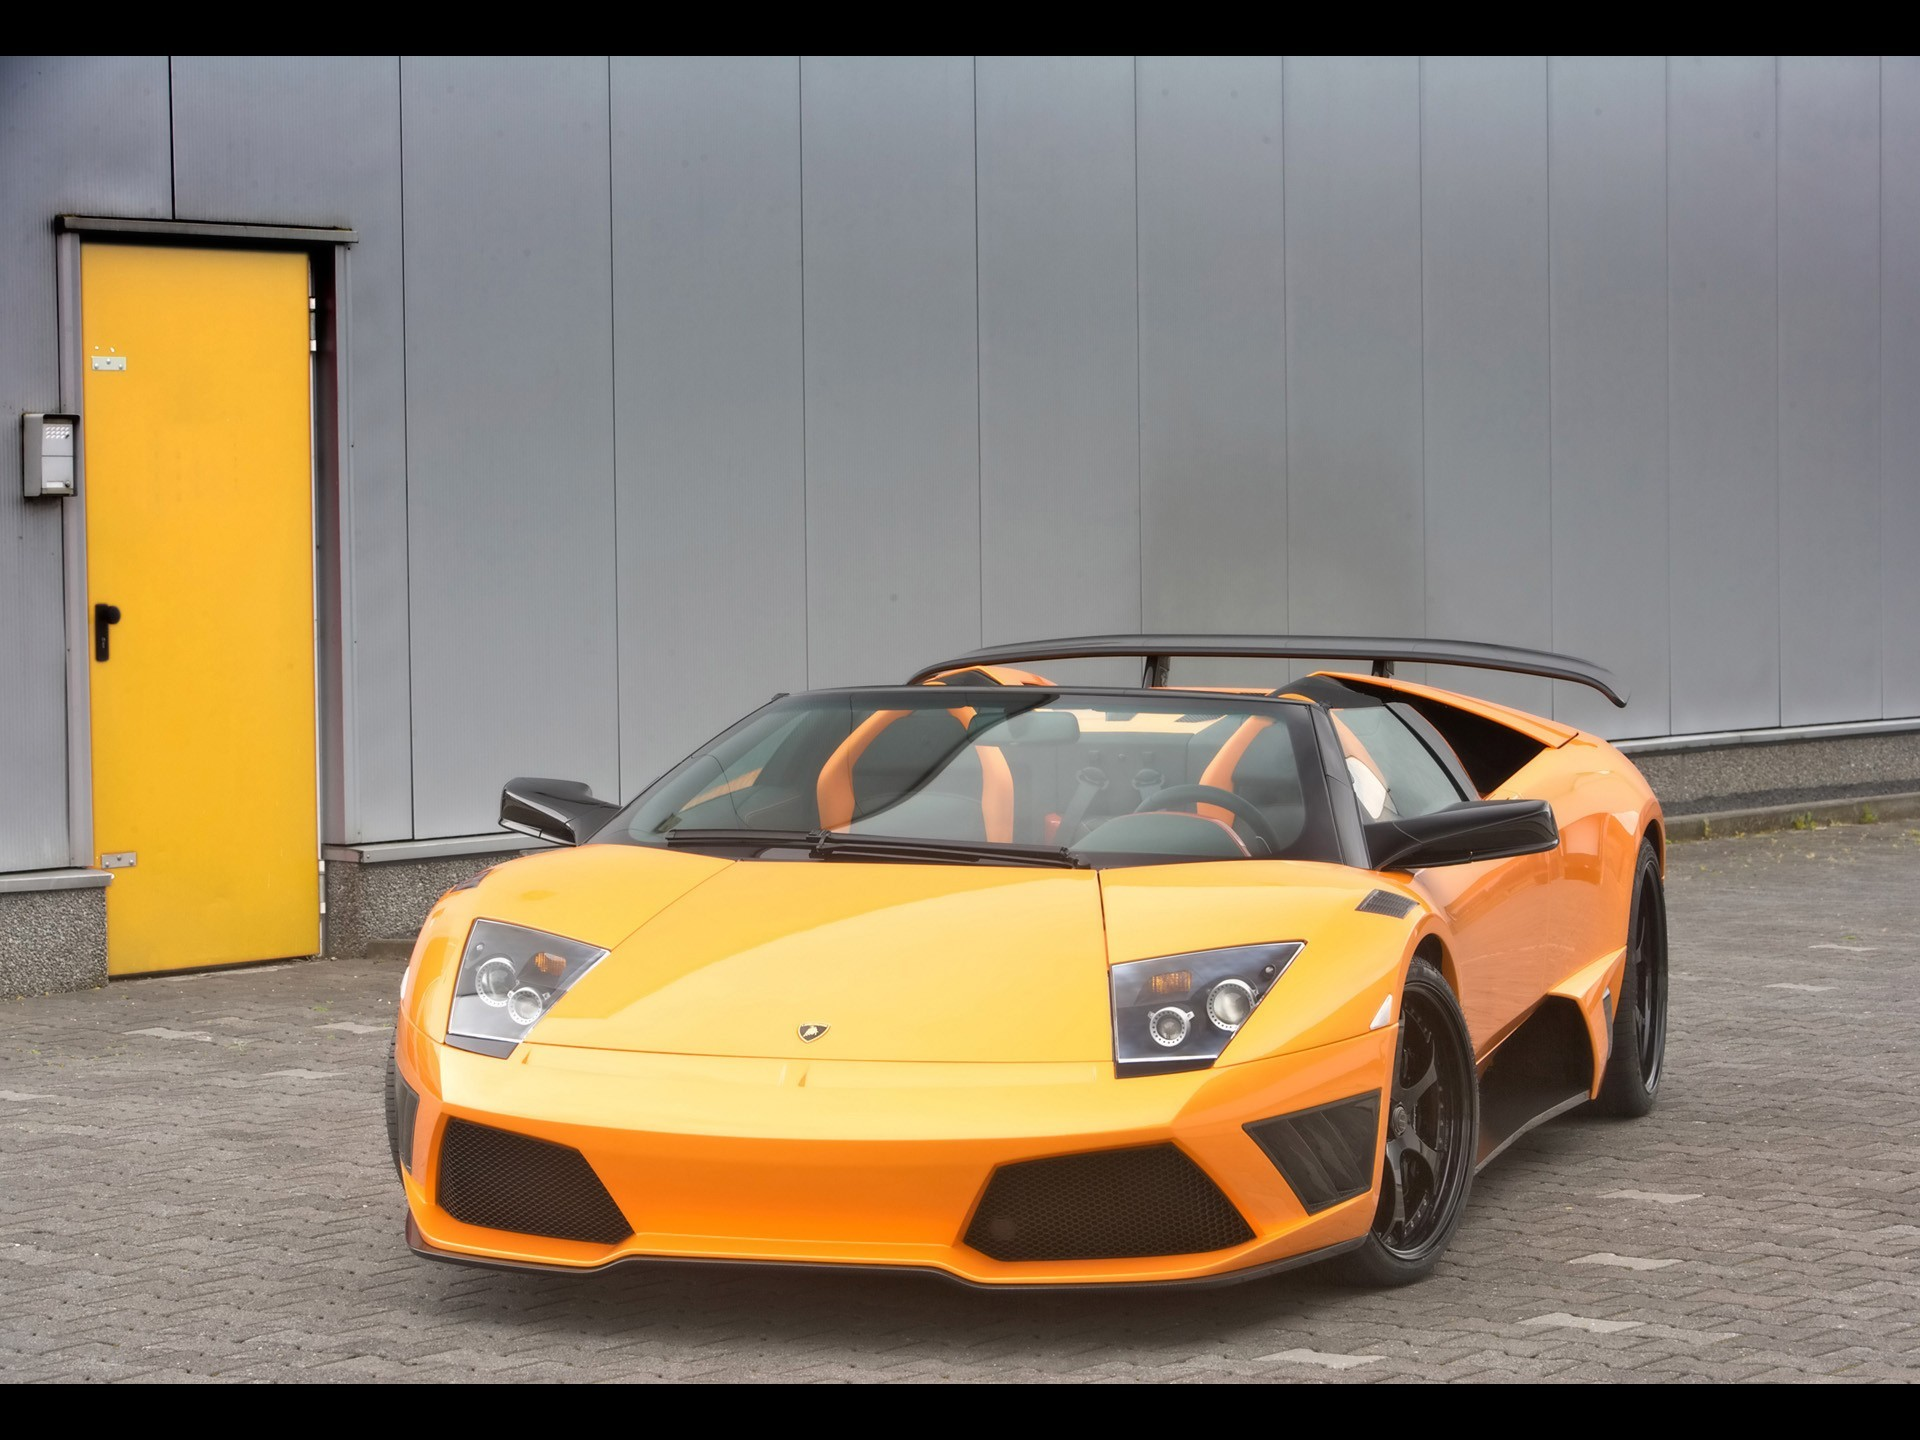 cars vehicles lamborghini murcielago HD Wallpaper